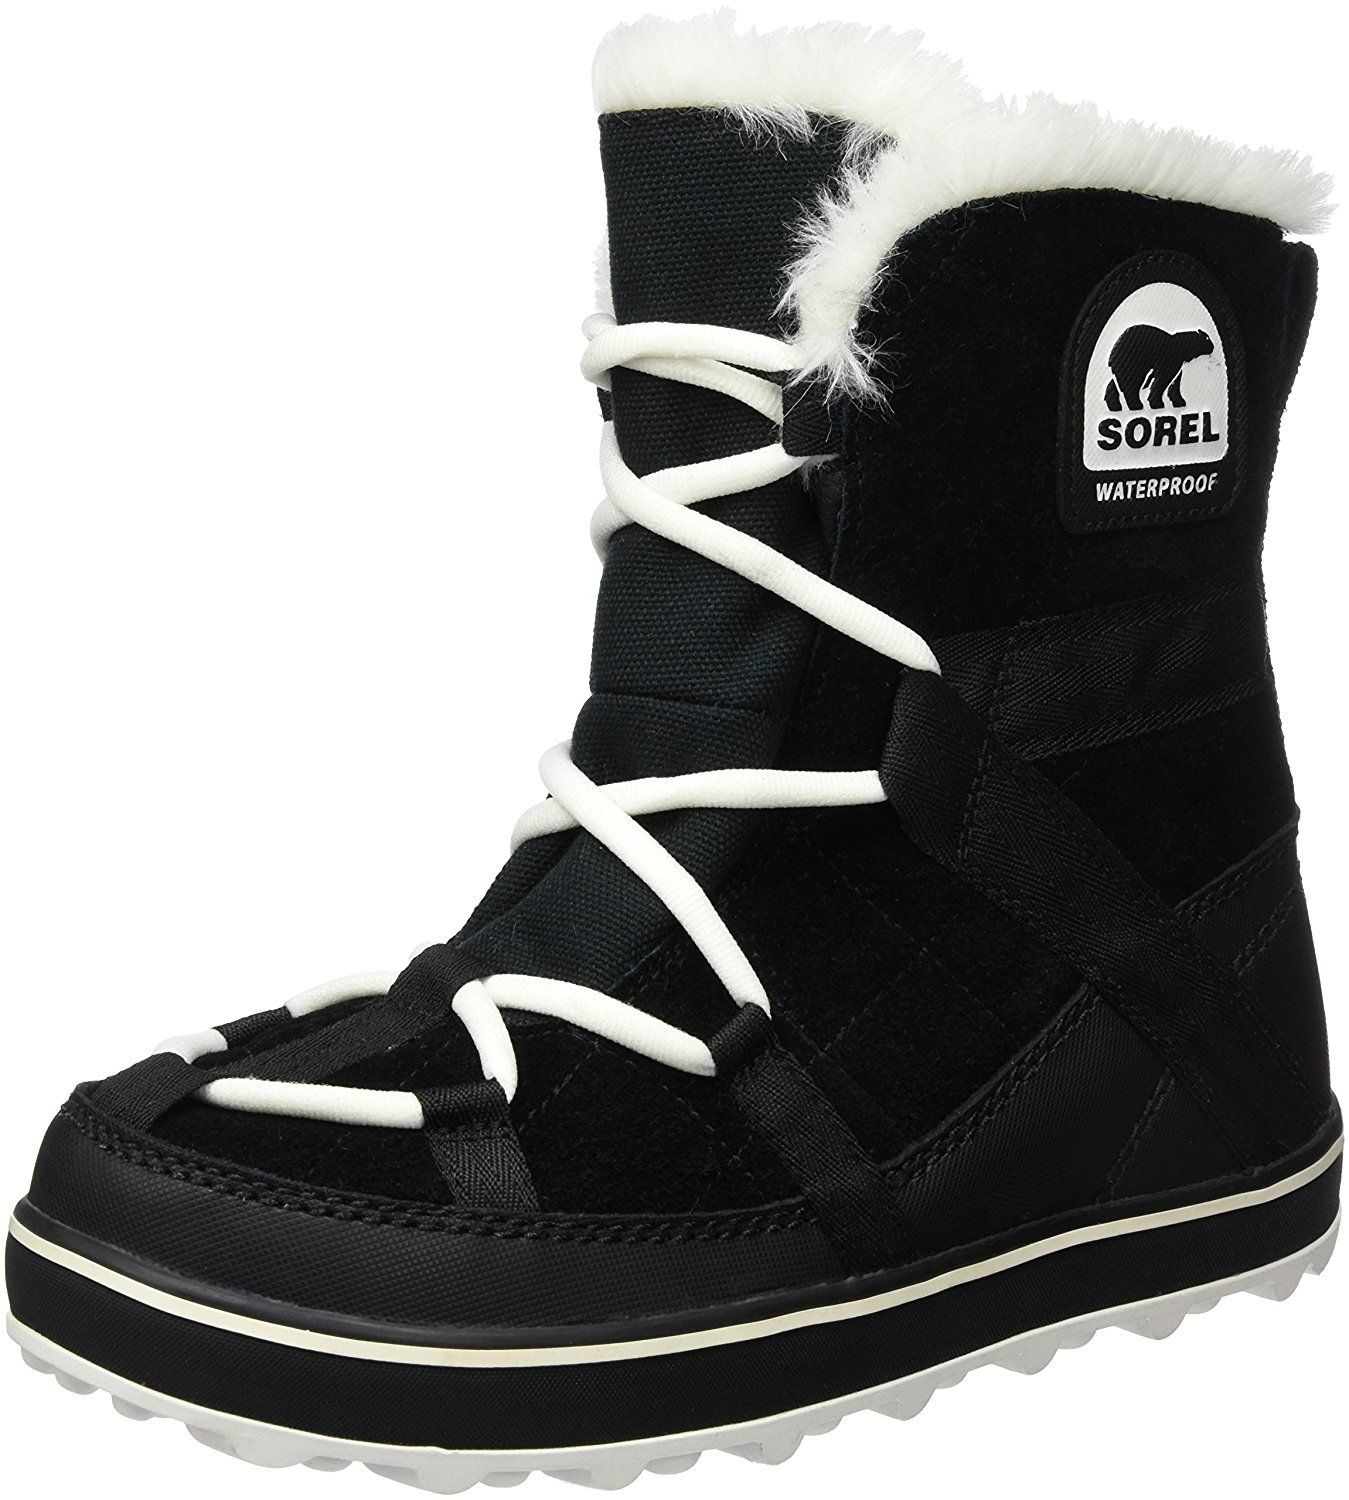 Low Shipping Fee Online Cheap Online Shop Womens Glacy Snow Boots Sorel Discount Get Authentic Free Shipping Low Shipping Best Place To Buy Online 5EsGG